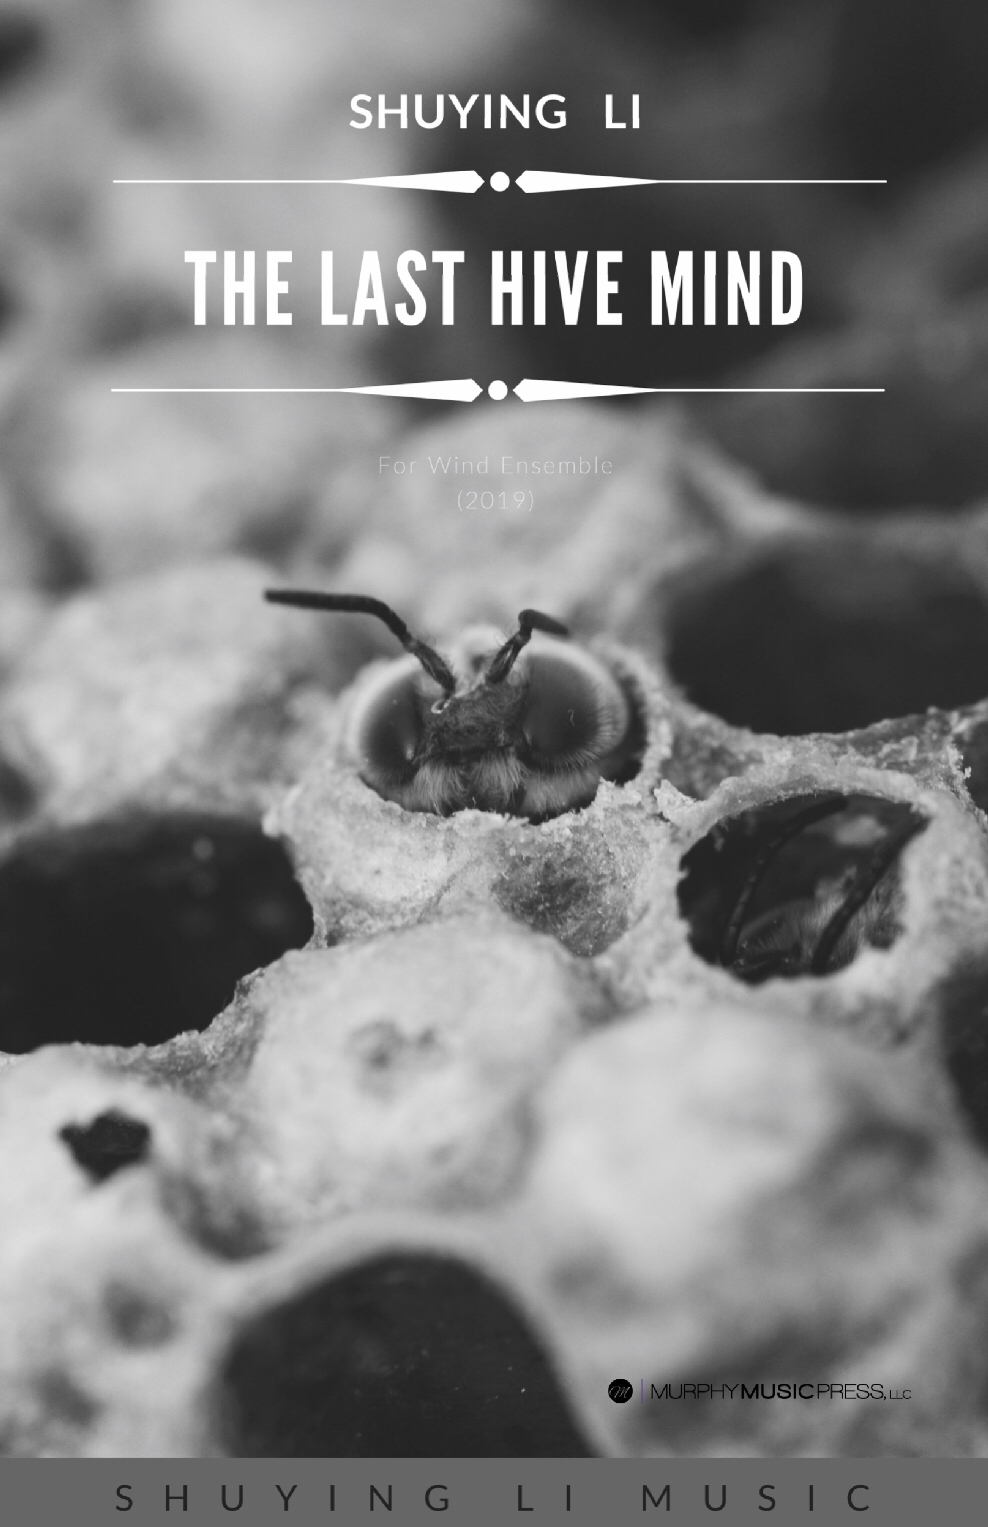 The Last Hivemind (Score Only) by Shuying Li